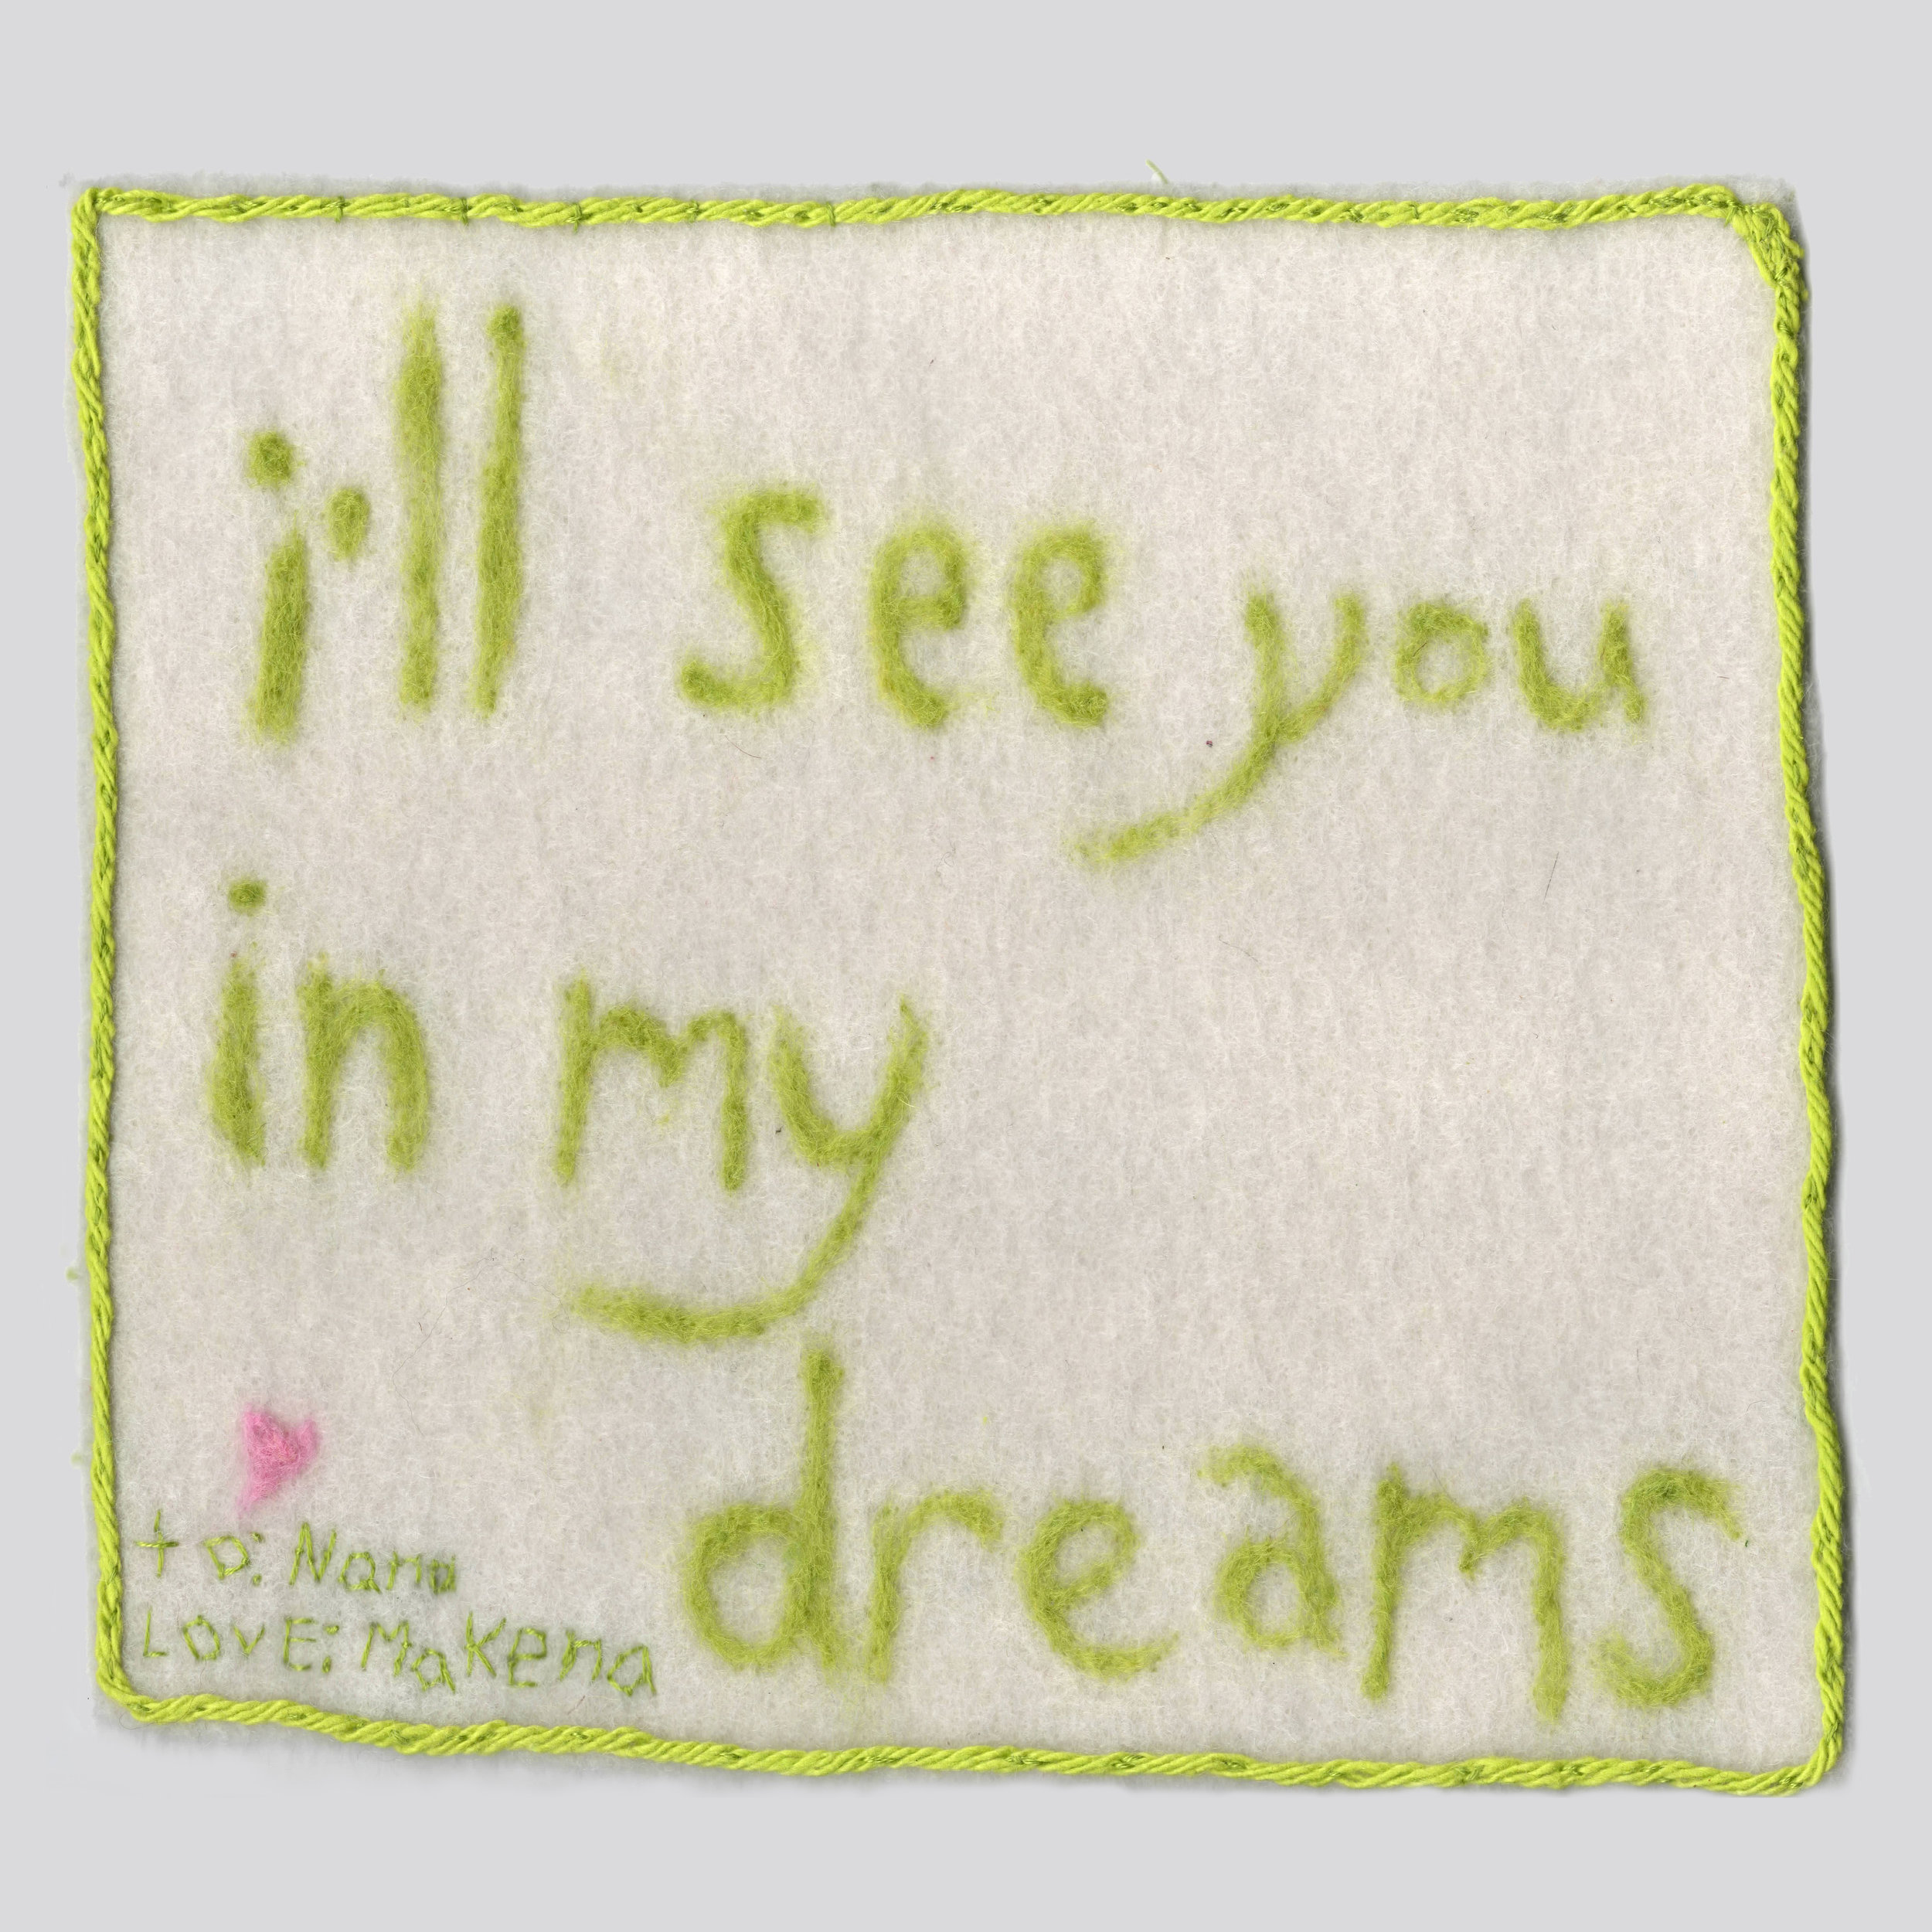 In My Dreams wool on cotton batting for my nana with dementia.jpg